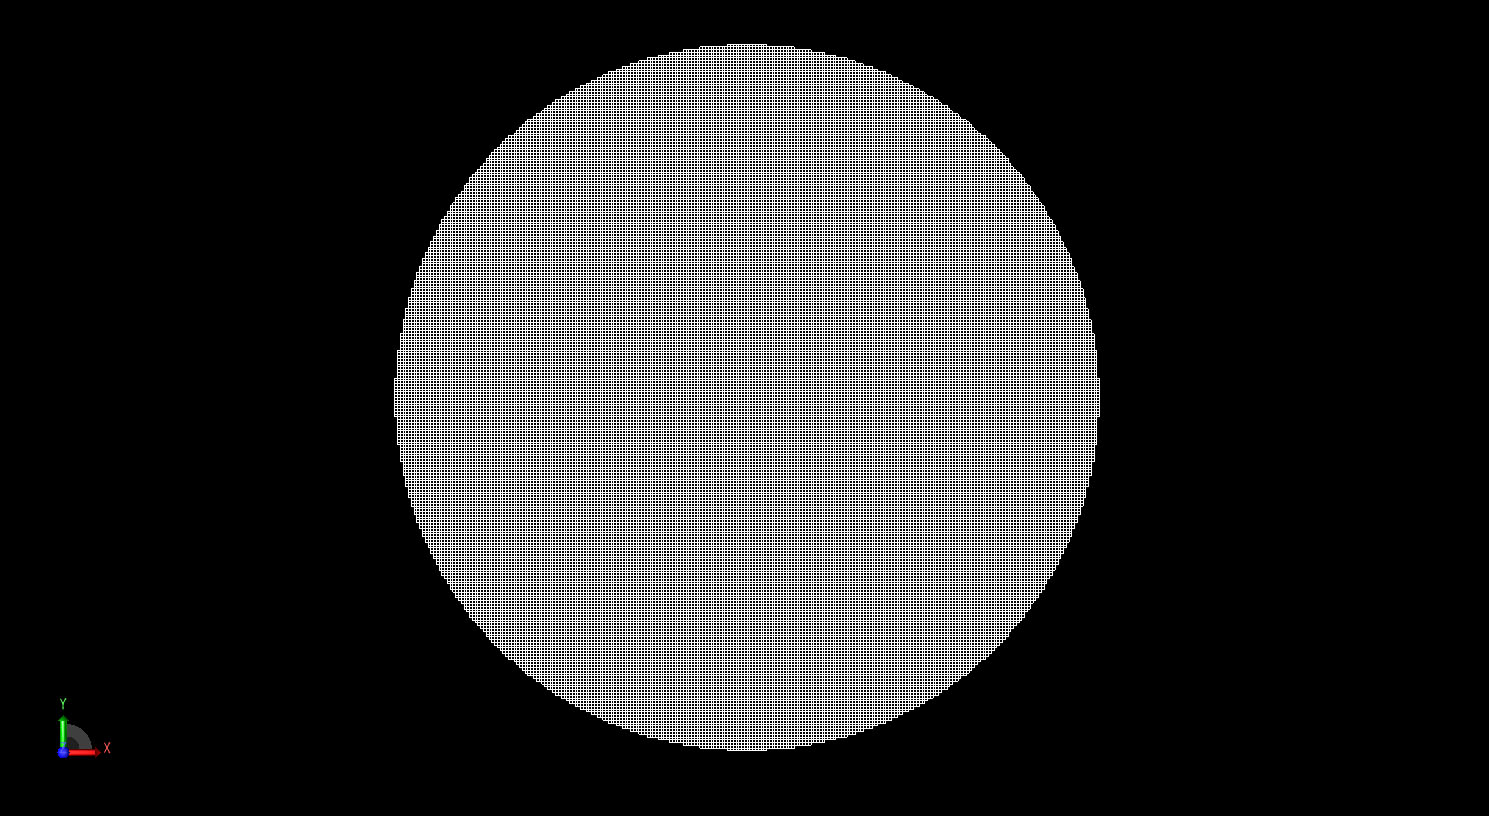 Figure 2  The sphere shown meshed in the FDTD grid at a cell size of 1 mm.